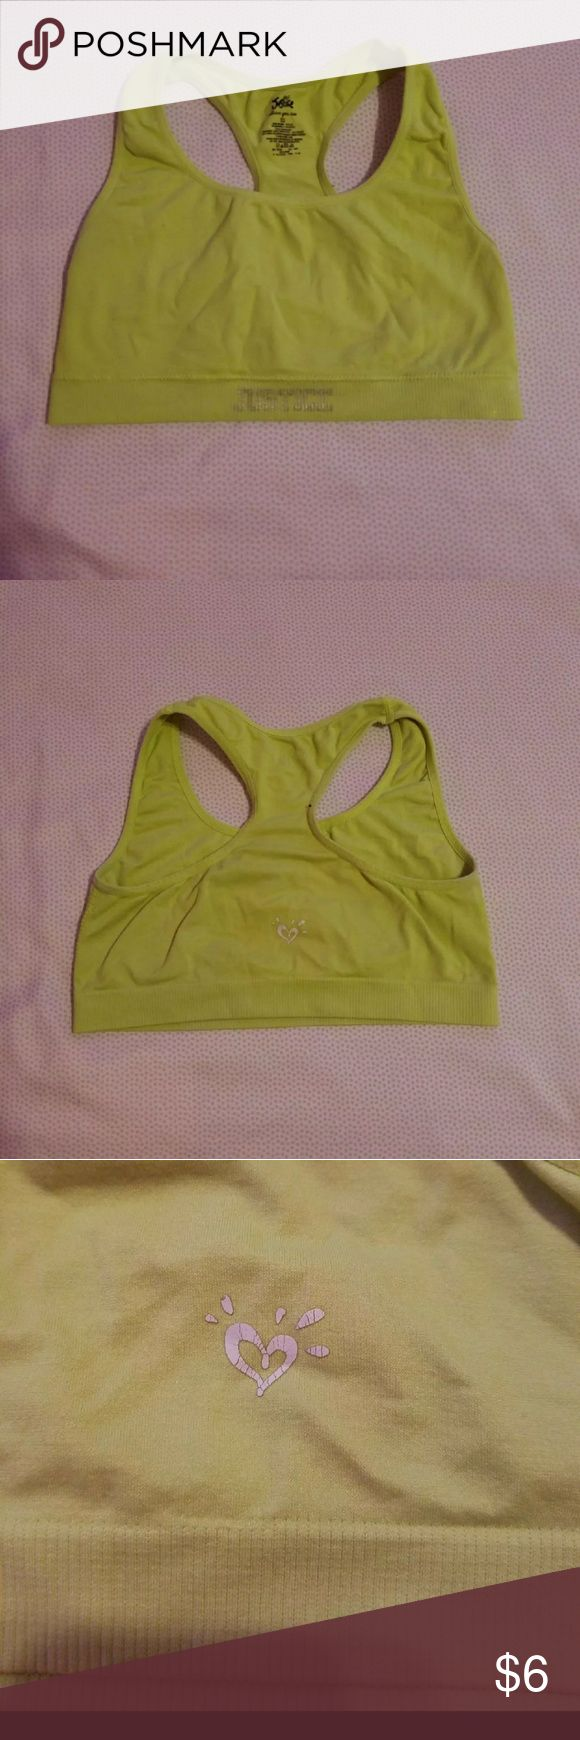 Justice sport bra Justice sport bra size 32. Some fading due to wash/wear. Logo on back has some cracking as seen in 3rd photo Justice Other